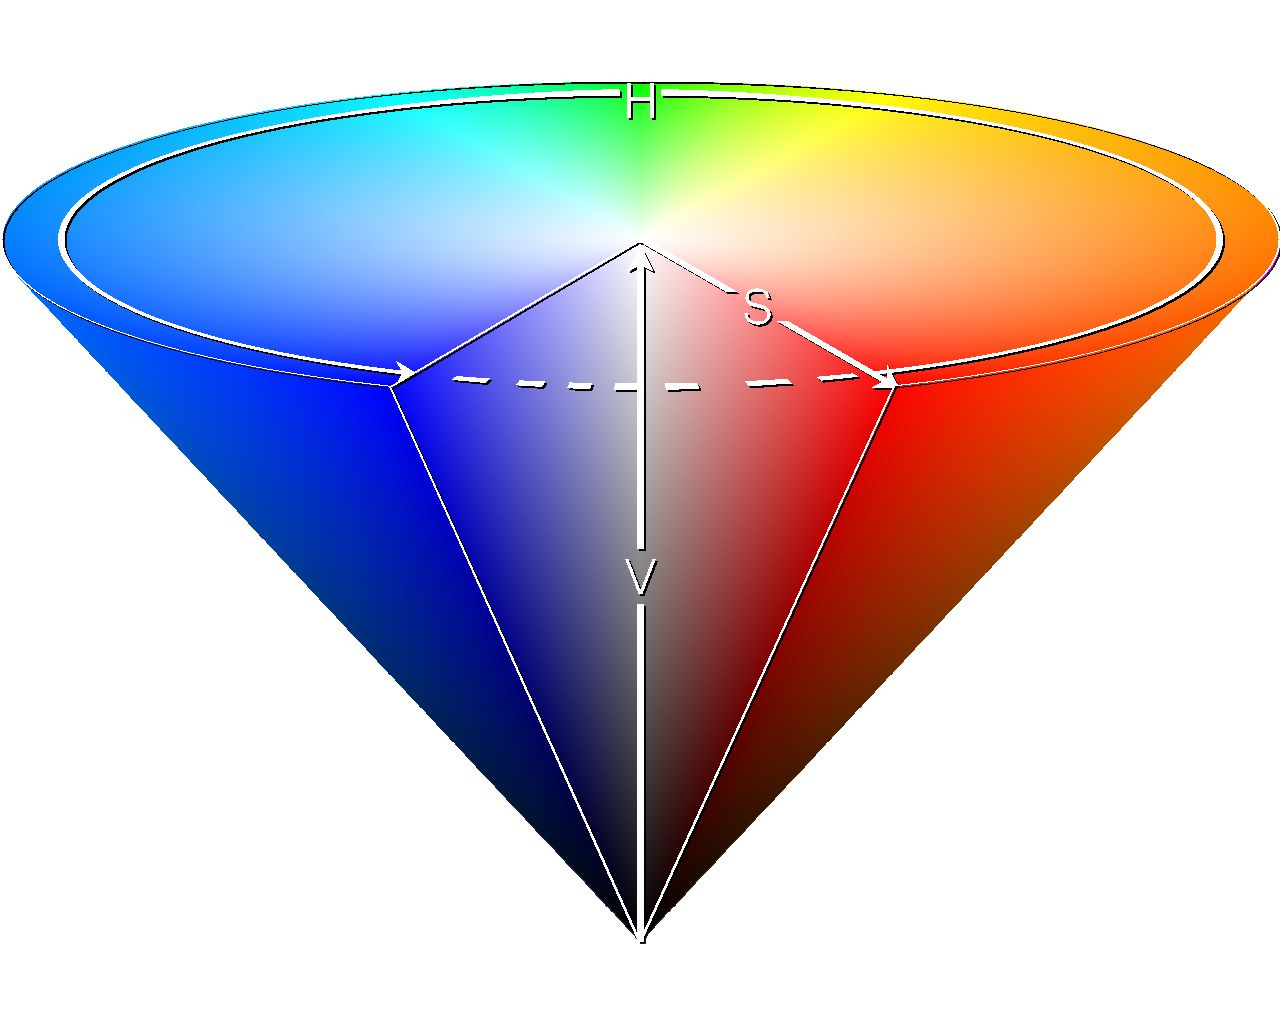 HSB Is A Color Model That Exists As 3D Space Where Hue Saturation And Brightness Has An Axis Each